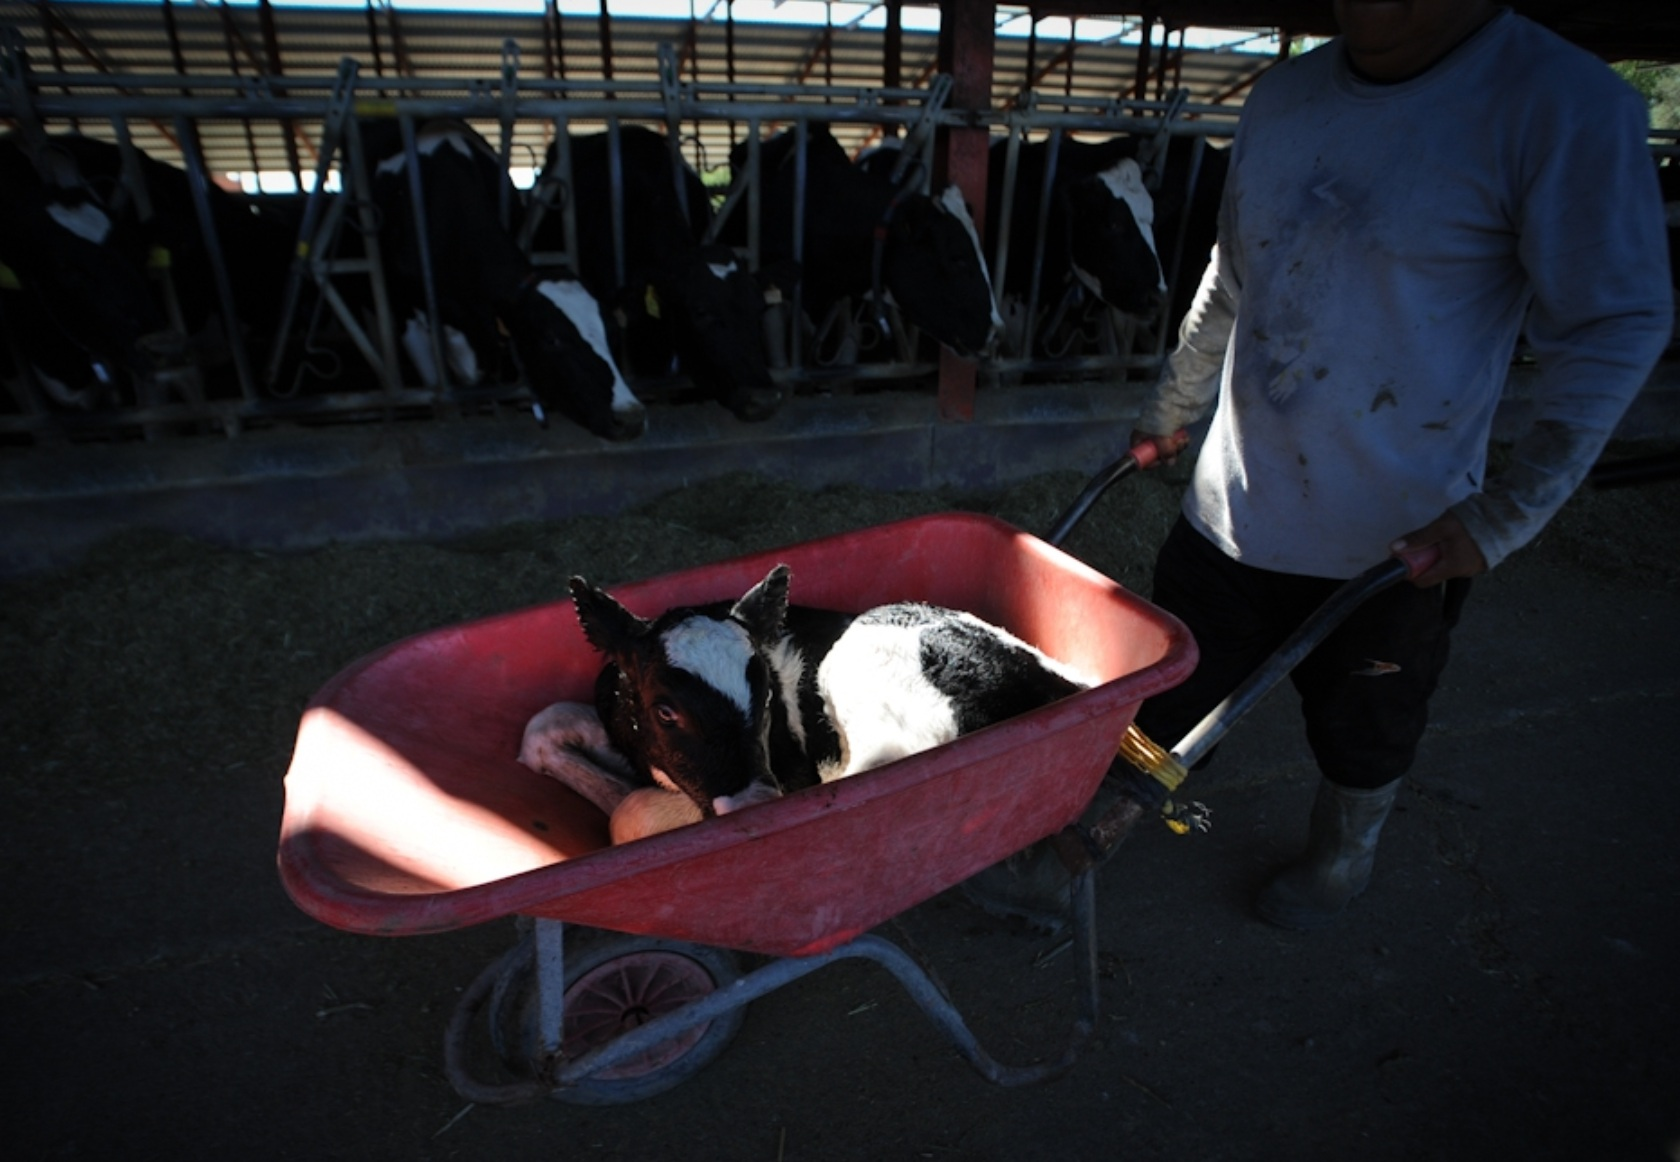 A dairy farm workr separates a calf from his mother